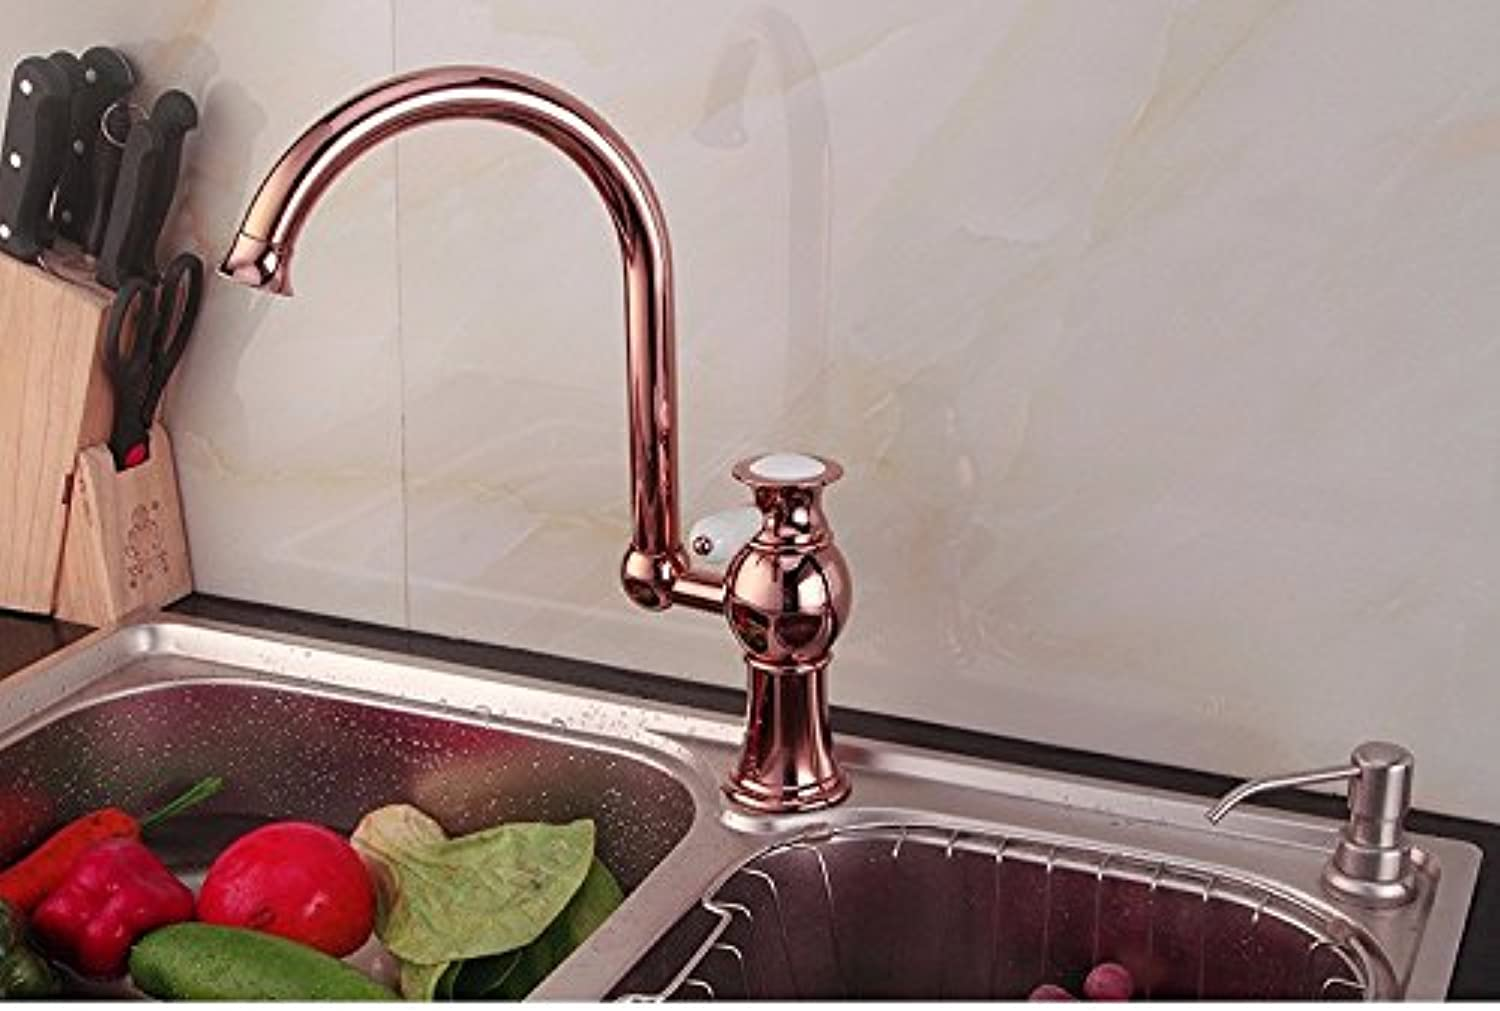 Tap-Sink Tap Basin Mixer Tap European Style Red Bronze Mixing Water Tap Kitchen Kitchen redary Bath Basin Faucet